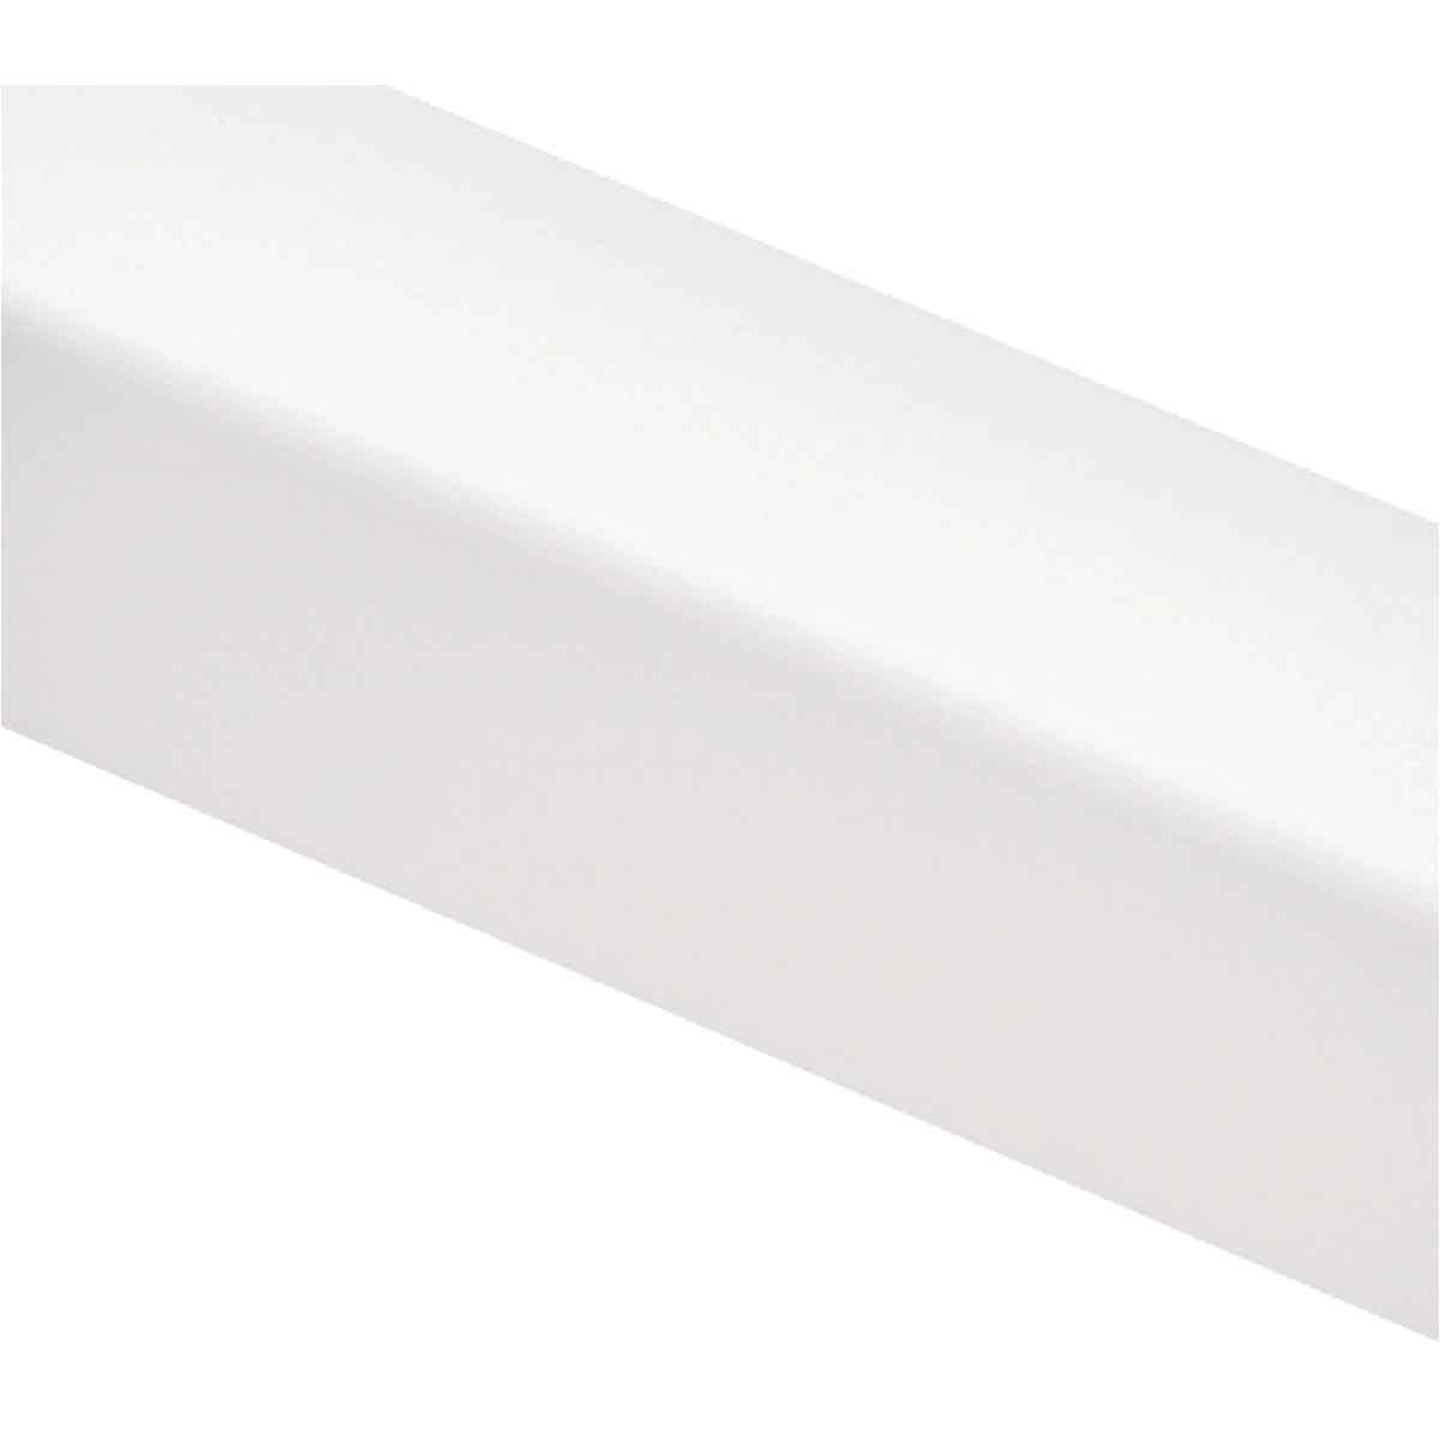 Franklin Brass Porcelana 24 In. White Replacement Towel Bar Only Image 2